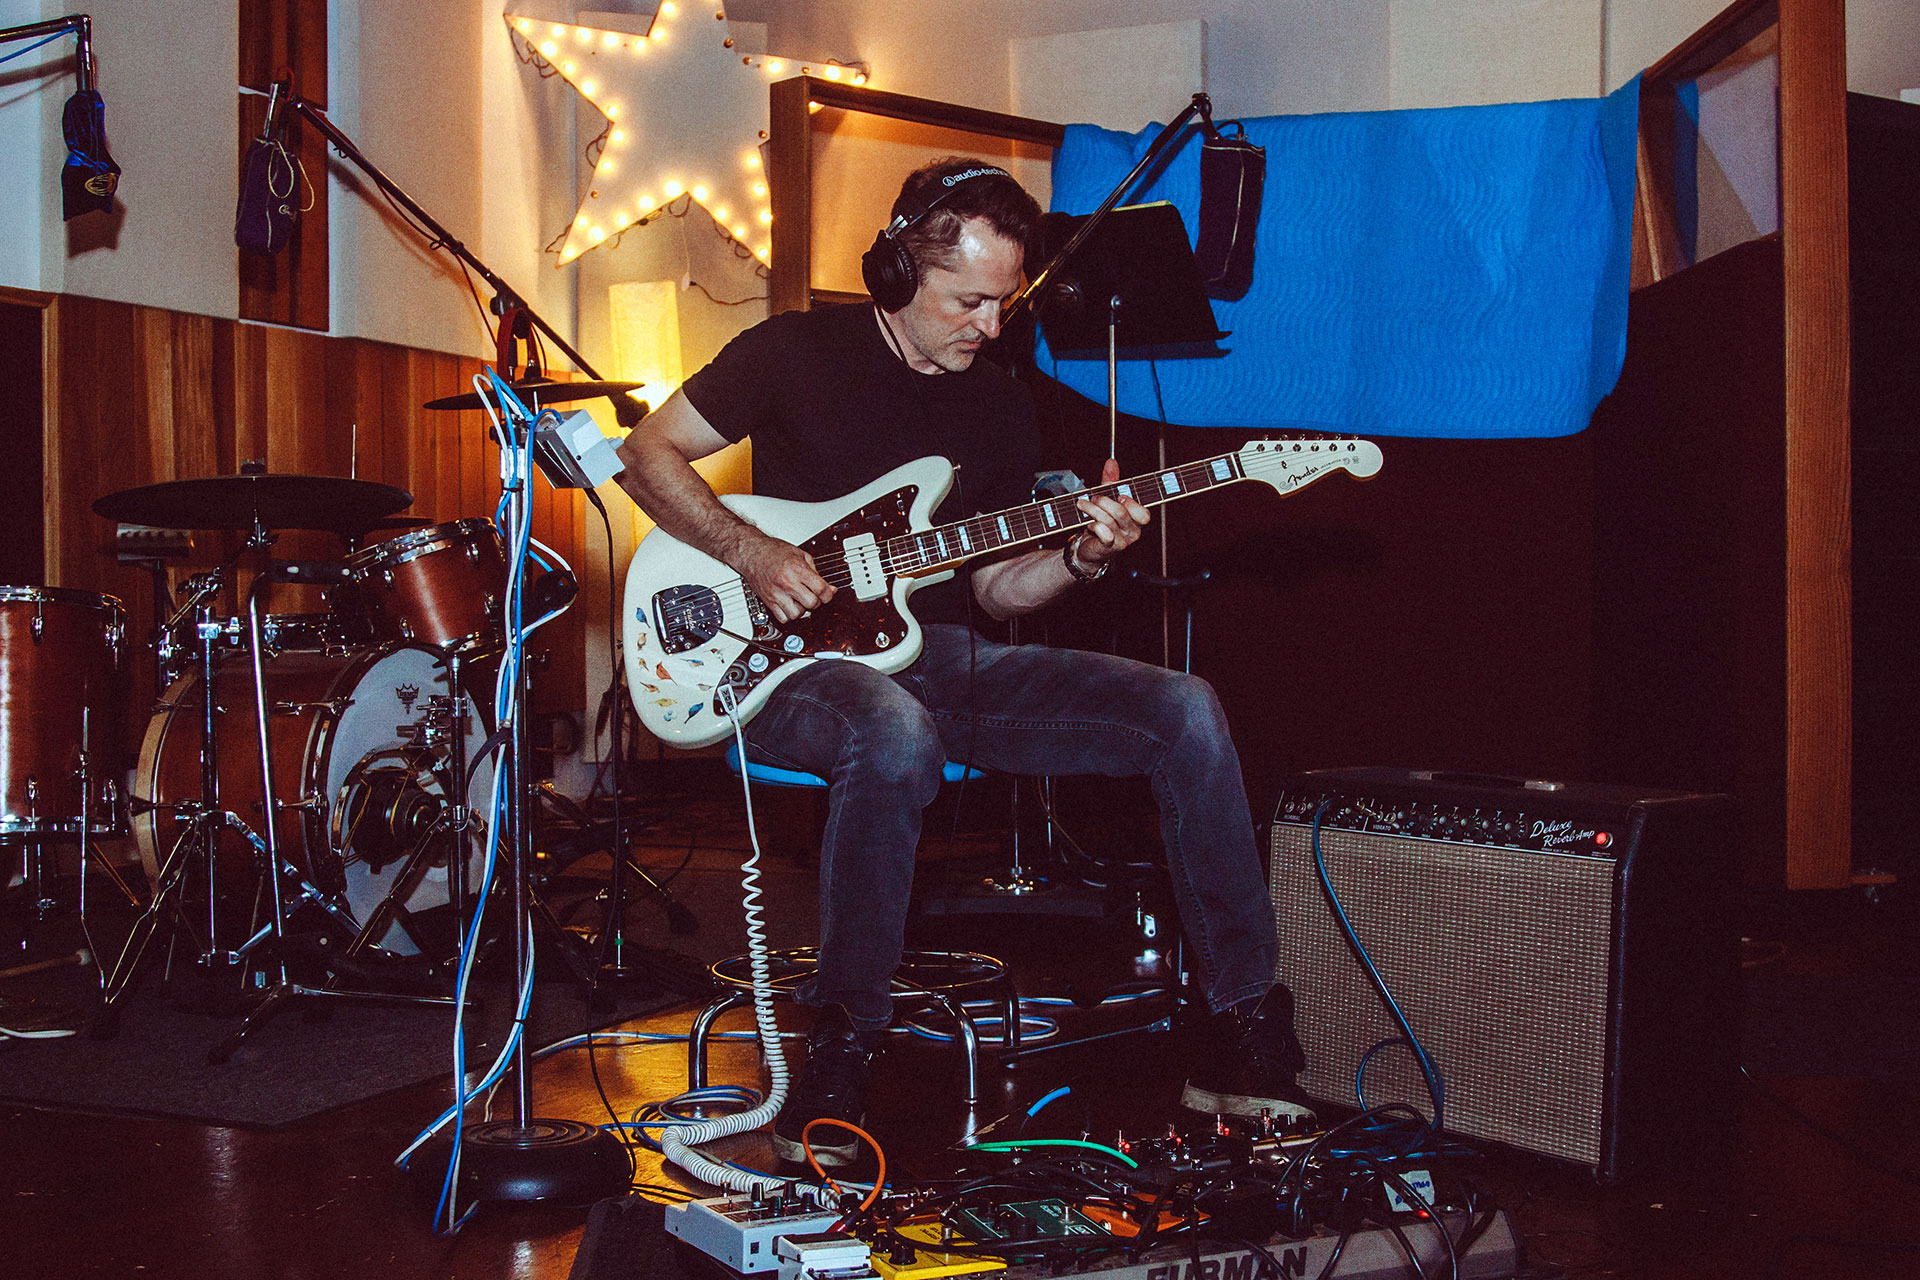 Stephen Becker playing the electric guitar